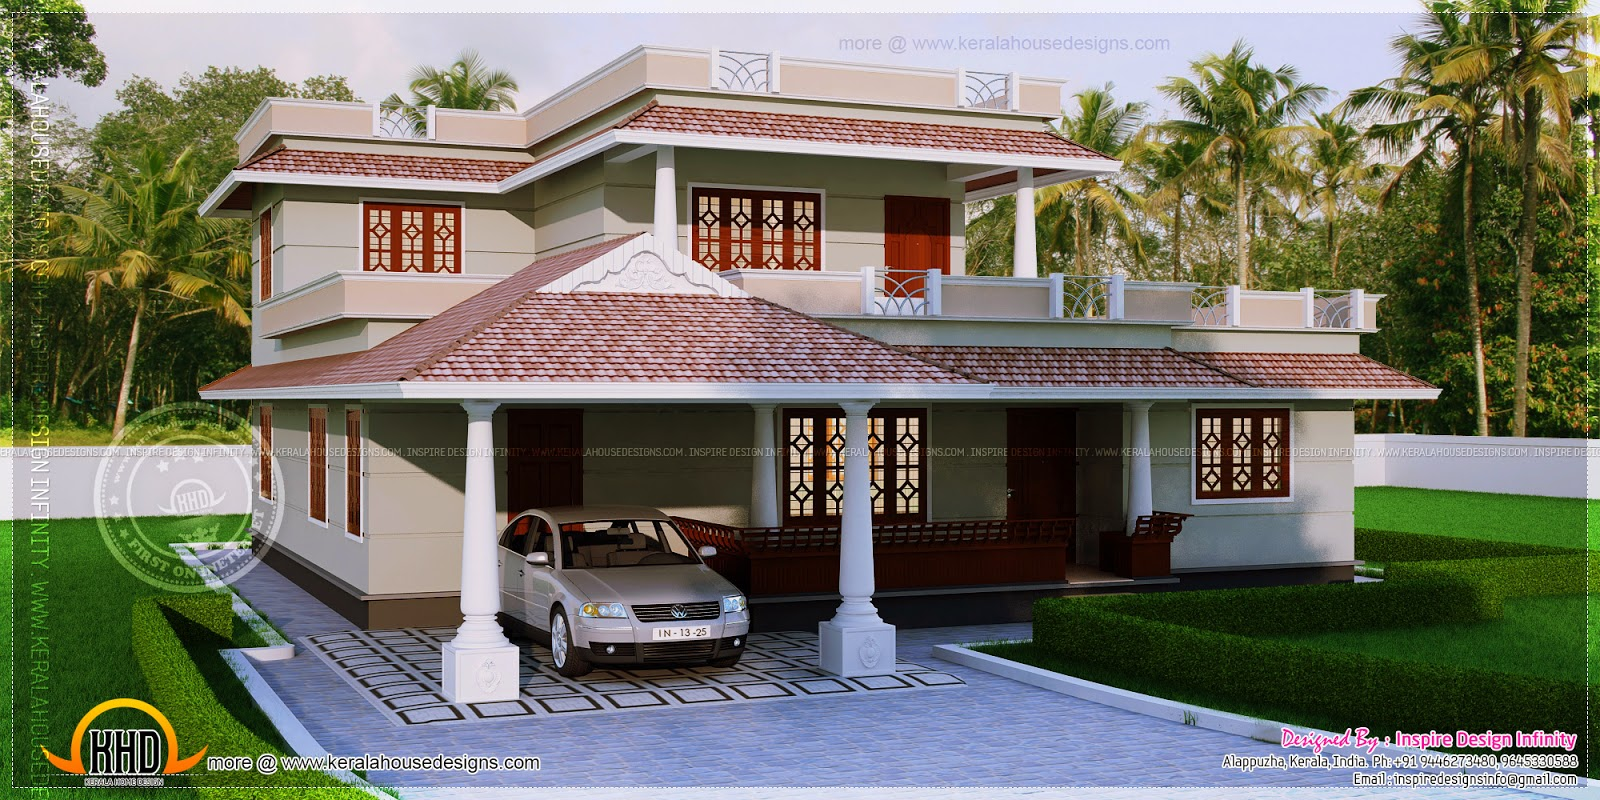 4 bedroom kerala style house in 300 square yards kerala for House plans with photos in kerala style